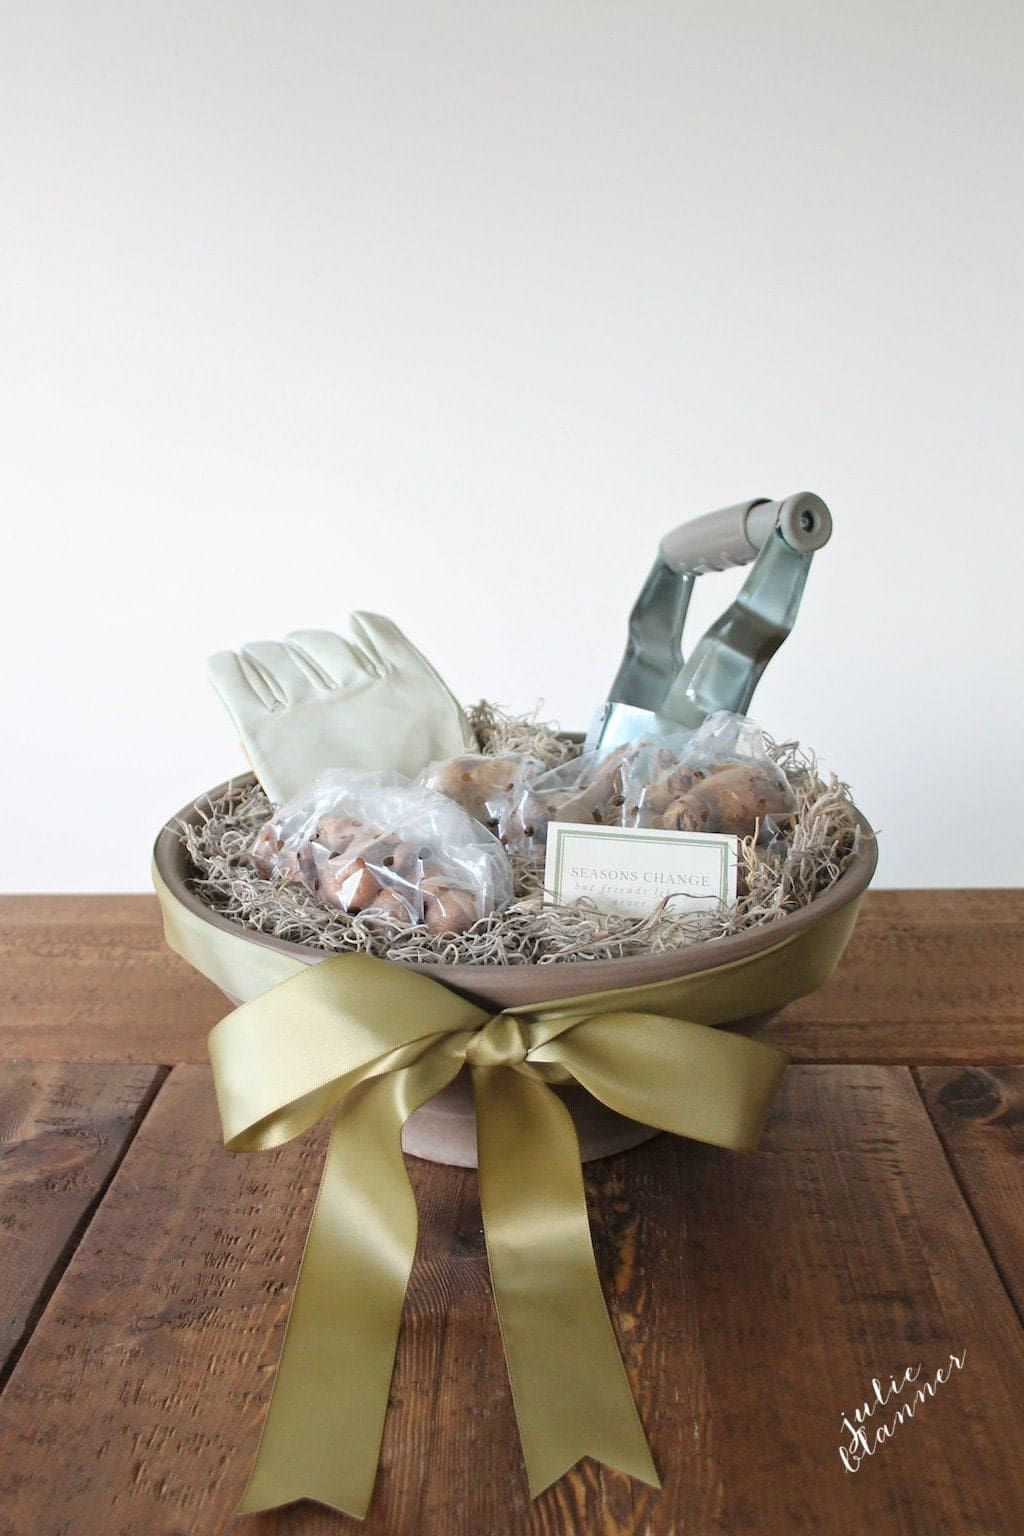 A beautiful hostess gift idea for a friend - gardening gift basket